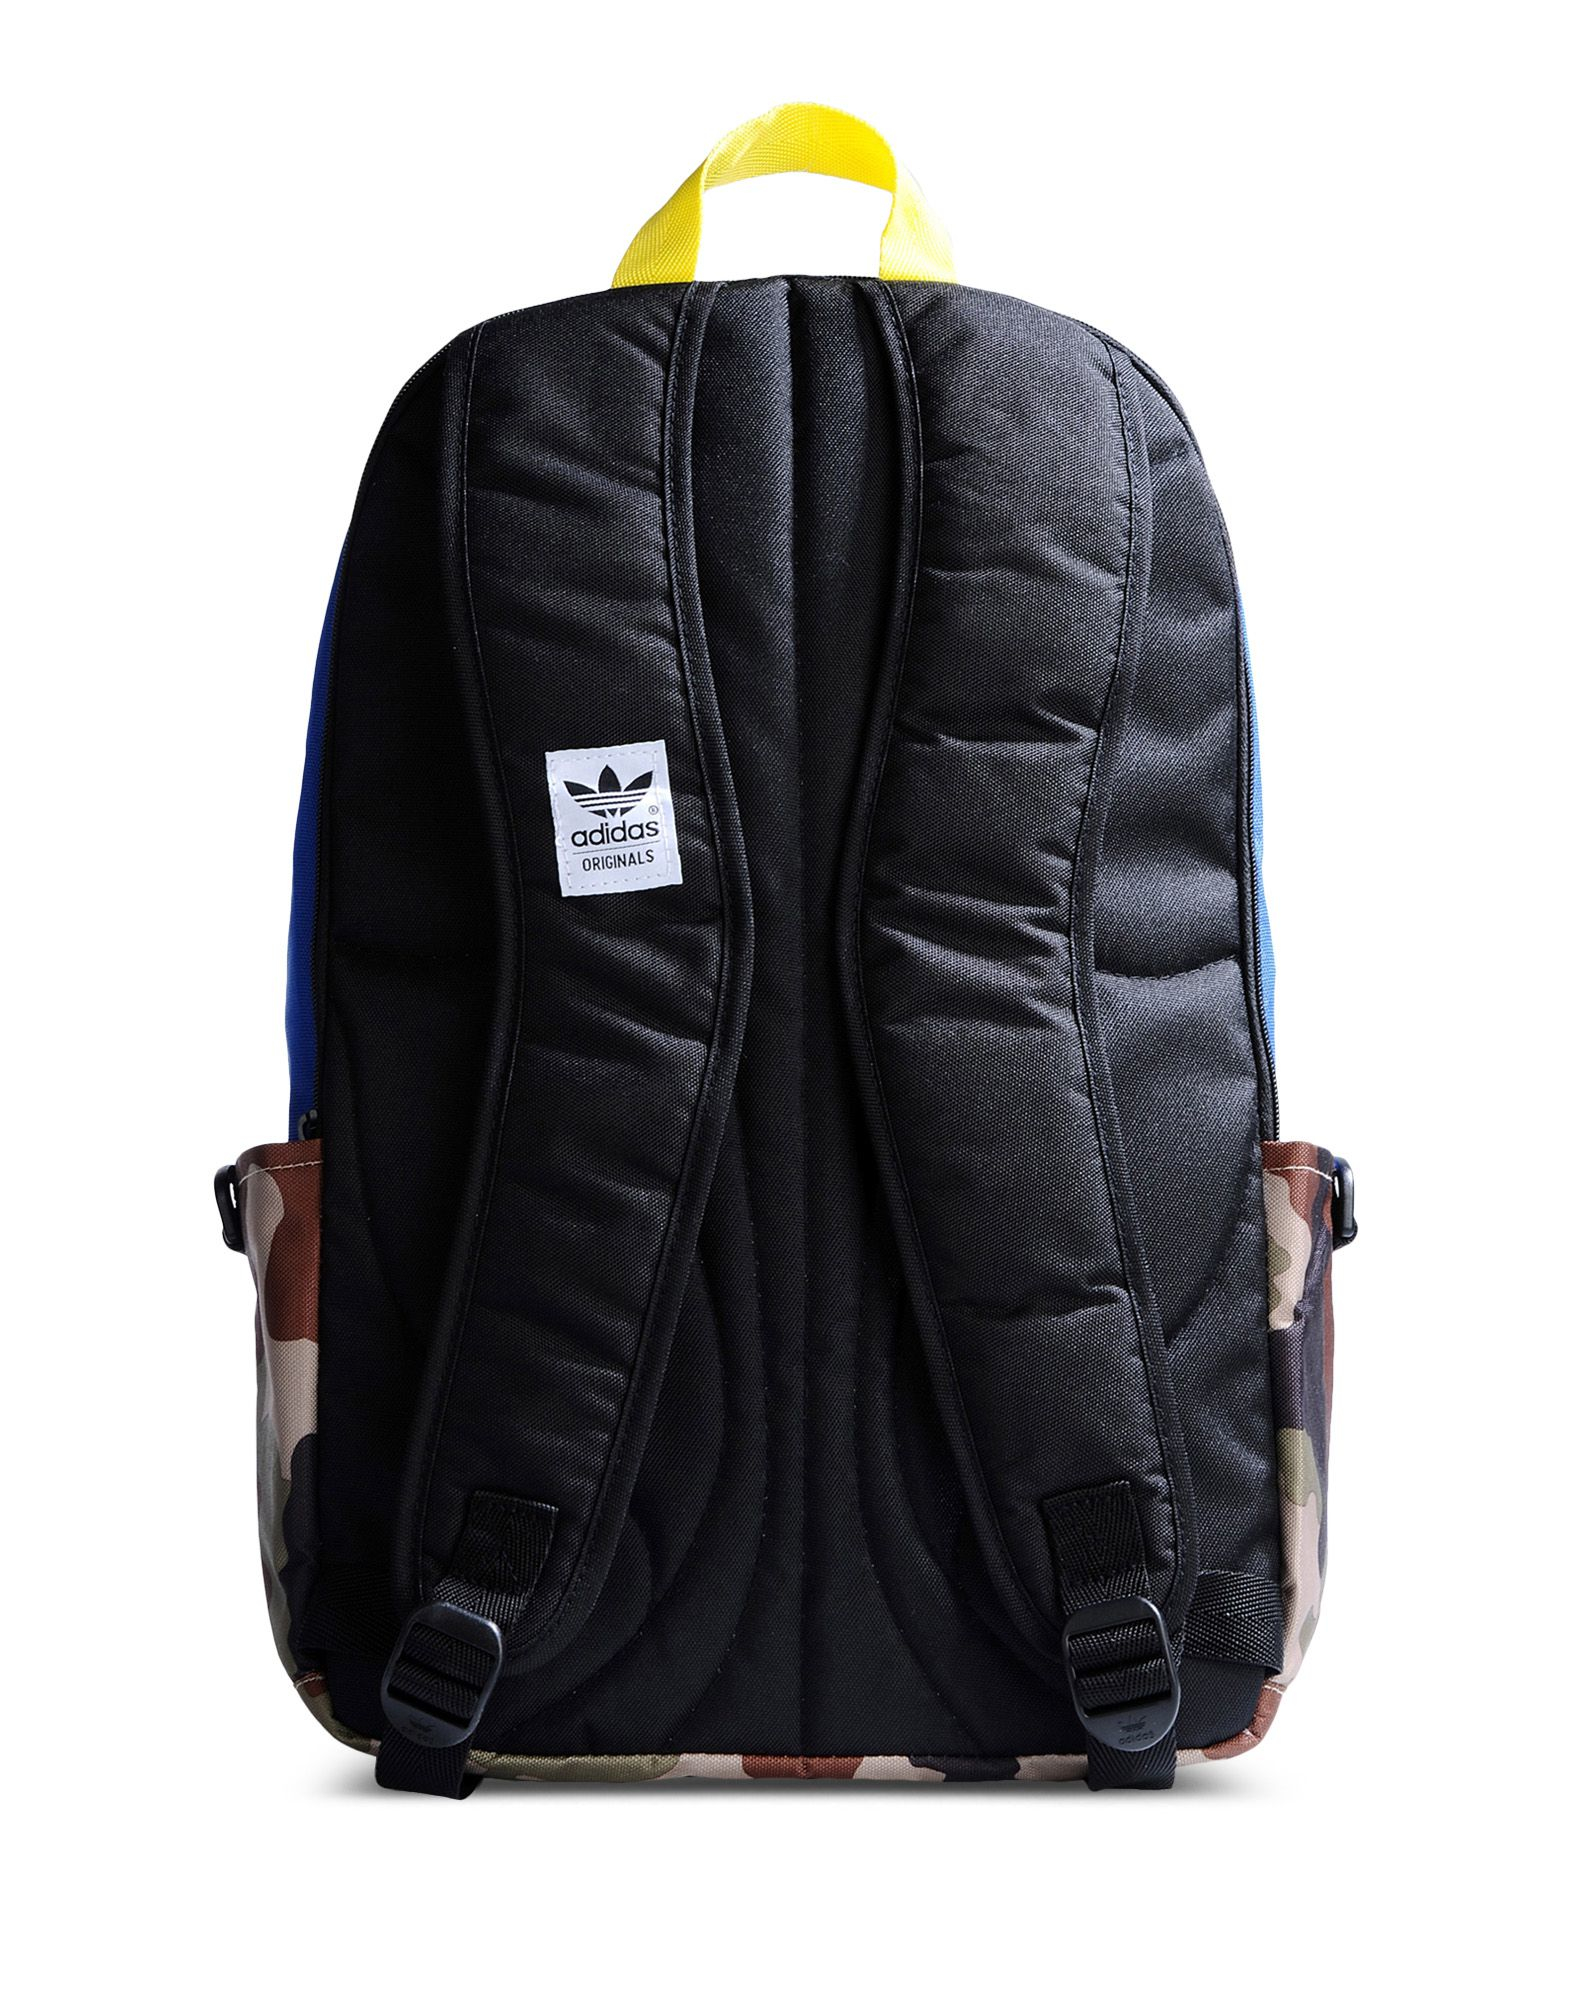 adidas originals rucksack in multicolor for men blue lyst. Black Bedroom Furniture Sets. Home Design Ideas